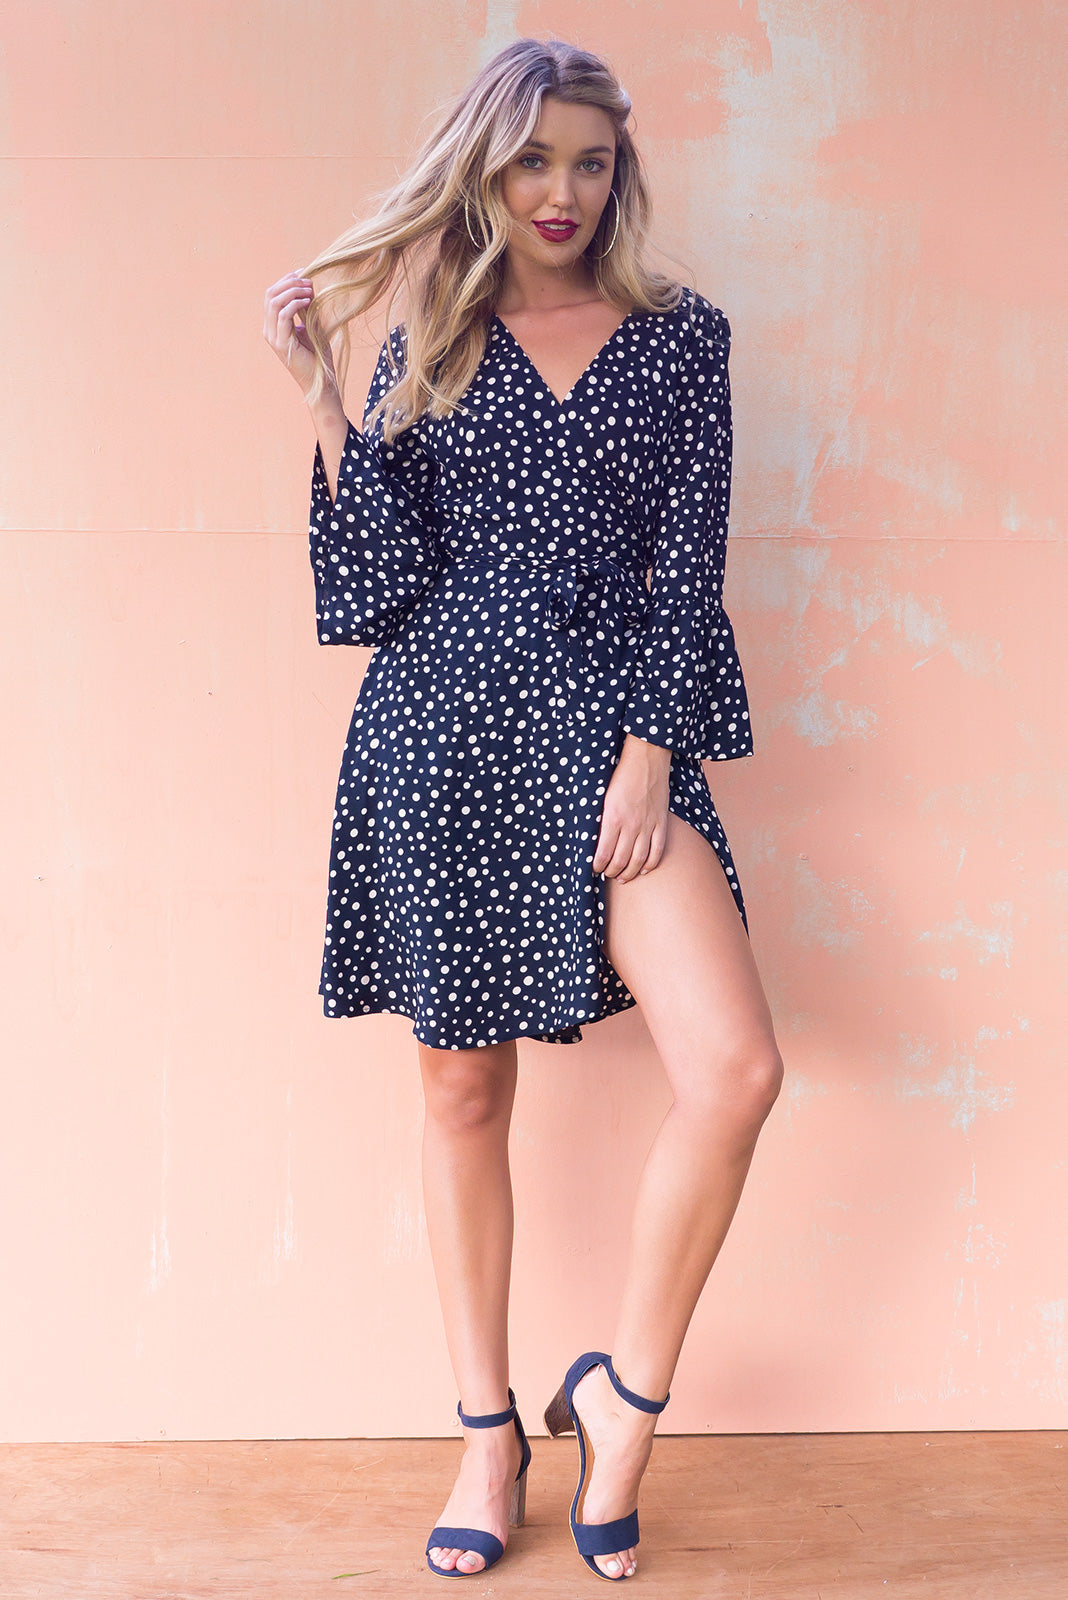 Claudia Wrap Dress Top Spot with a frill trumpet sleeve in a dark navy and cream spot print on woven rayon, wrap around dress style